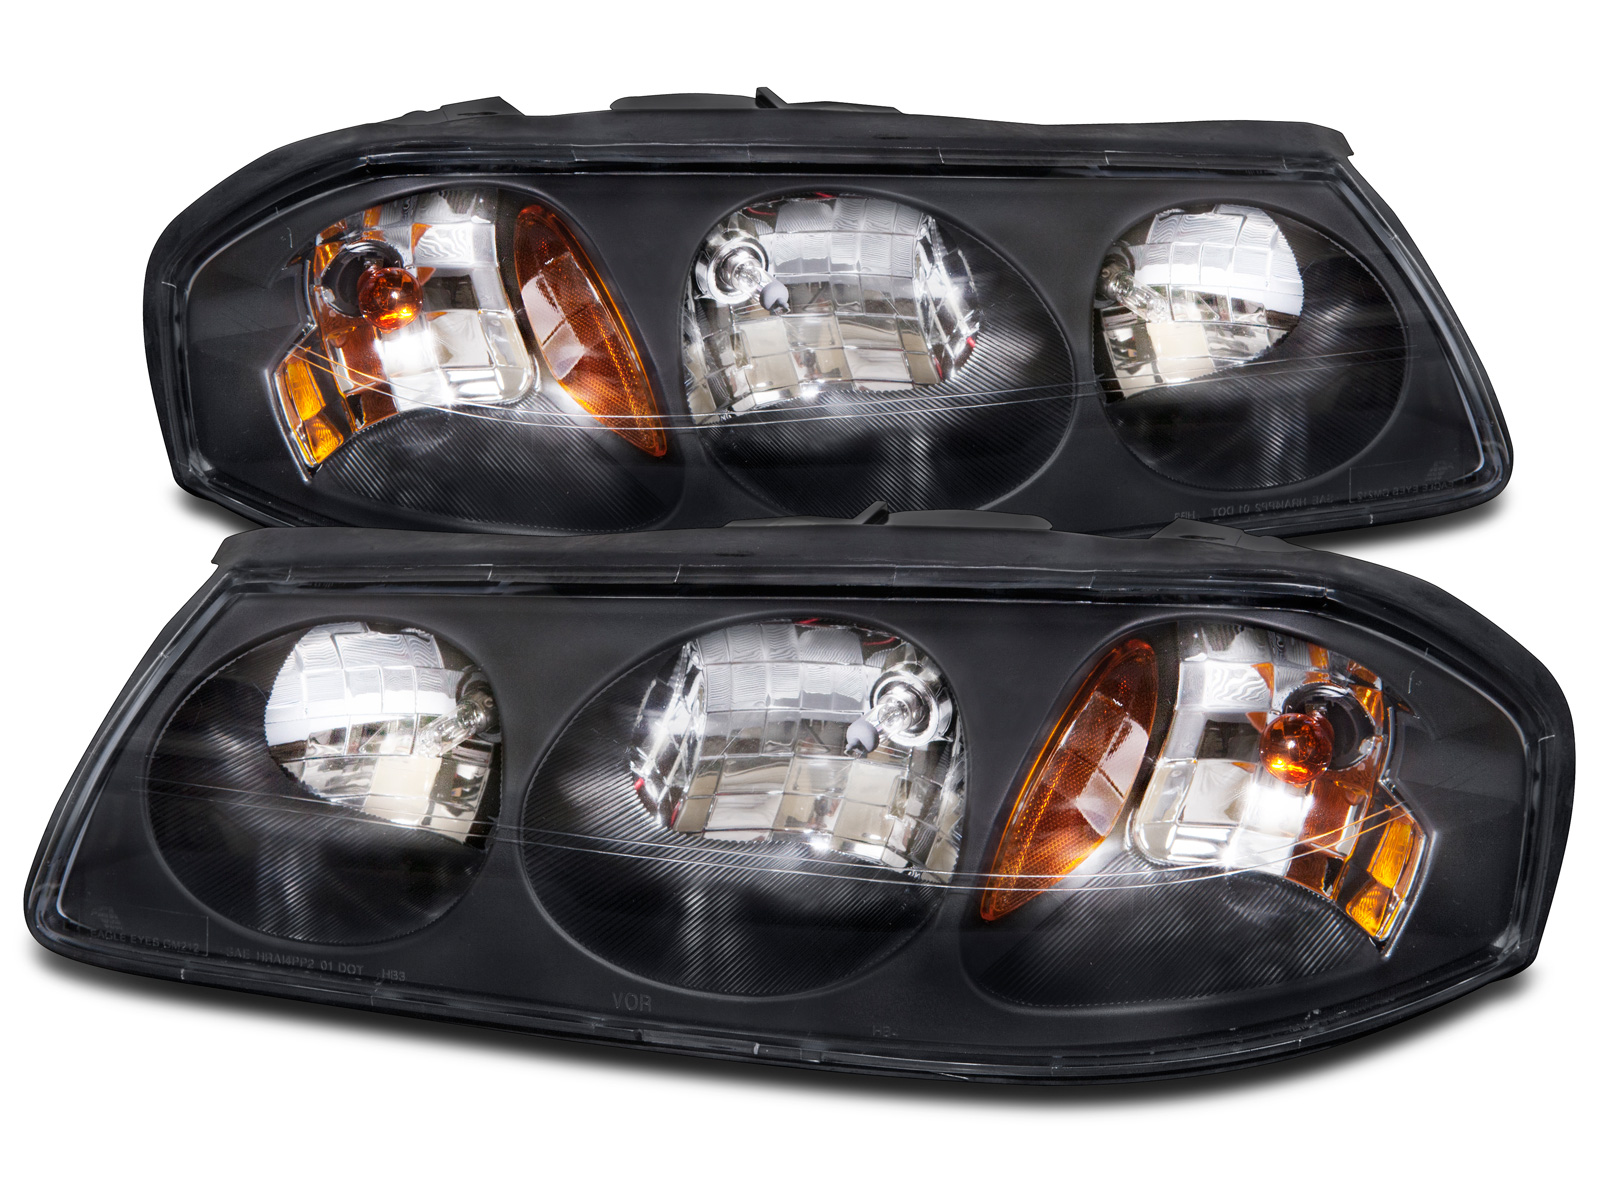 Damon Astoria 2005-2006 RV Motorhome Pair Replacement Front Headlights with Bulbs Left /& Right